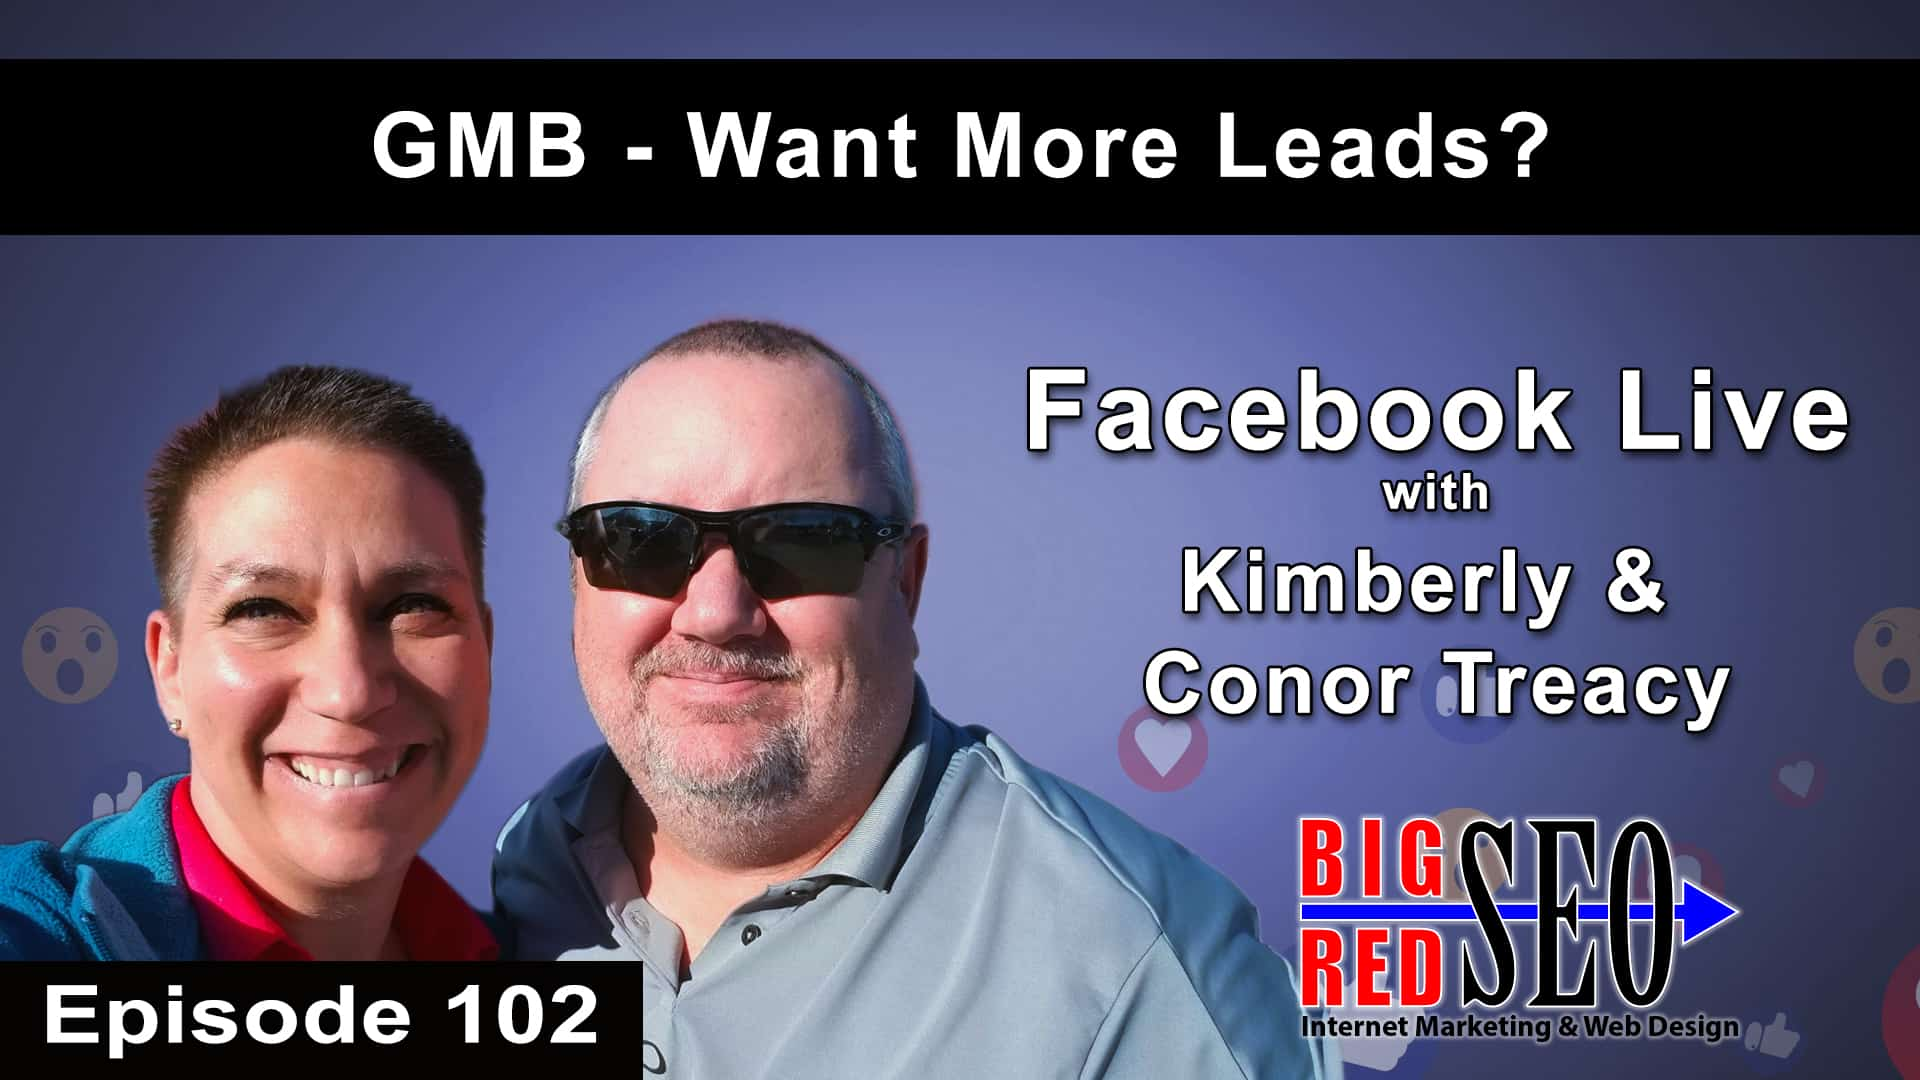 Get More Leads With Google My Business - Episode 102